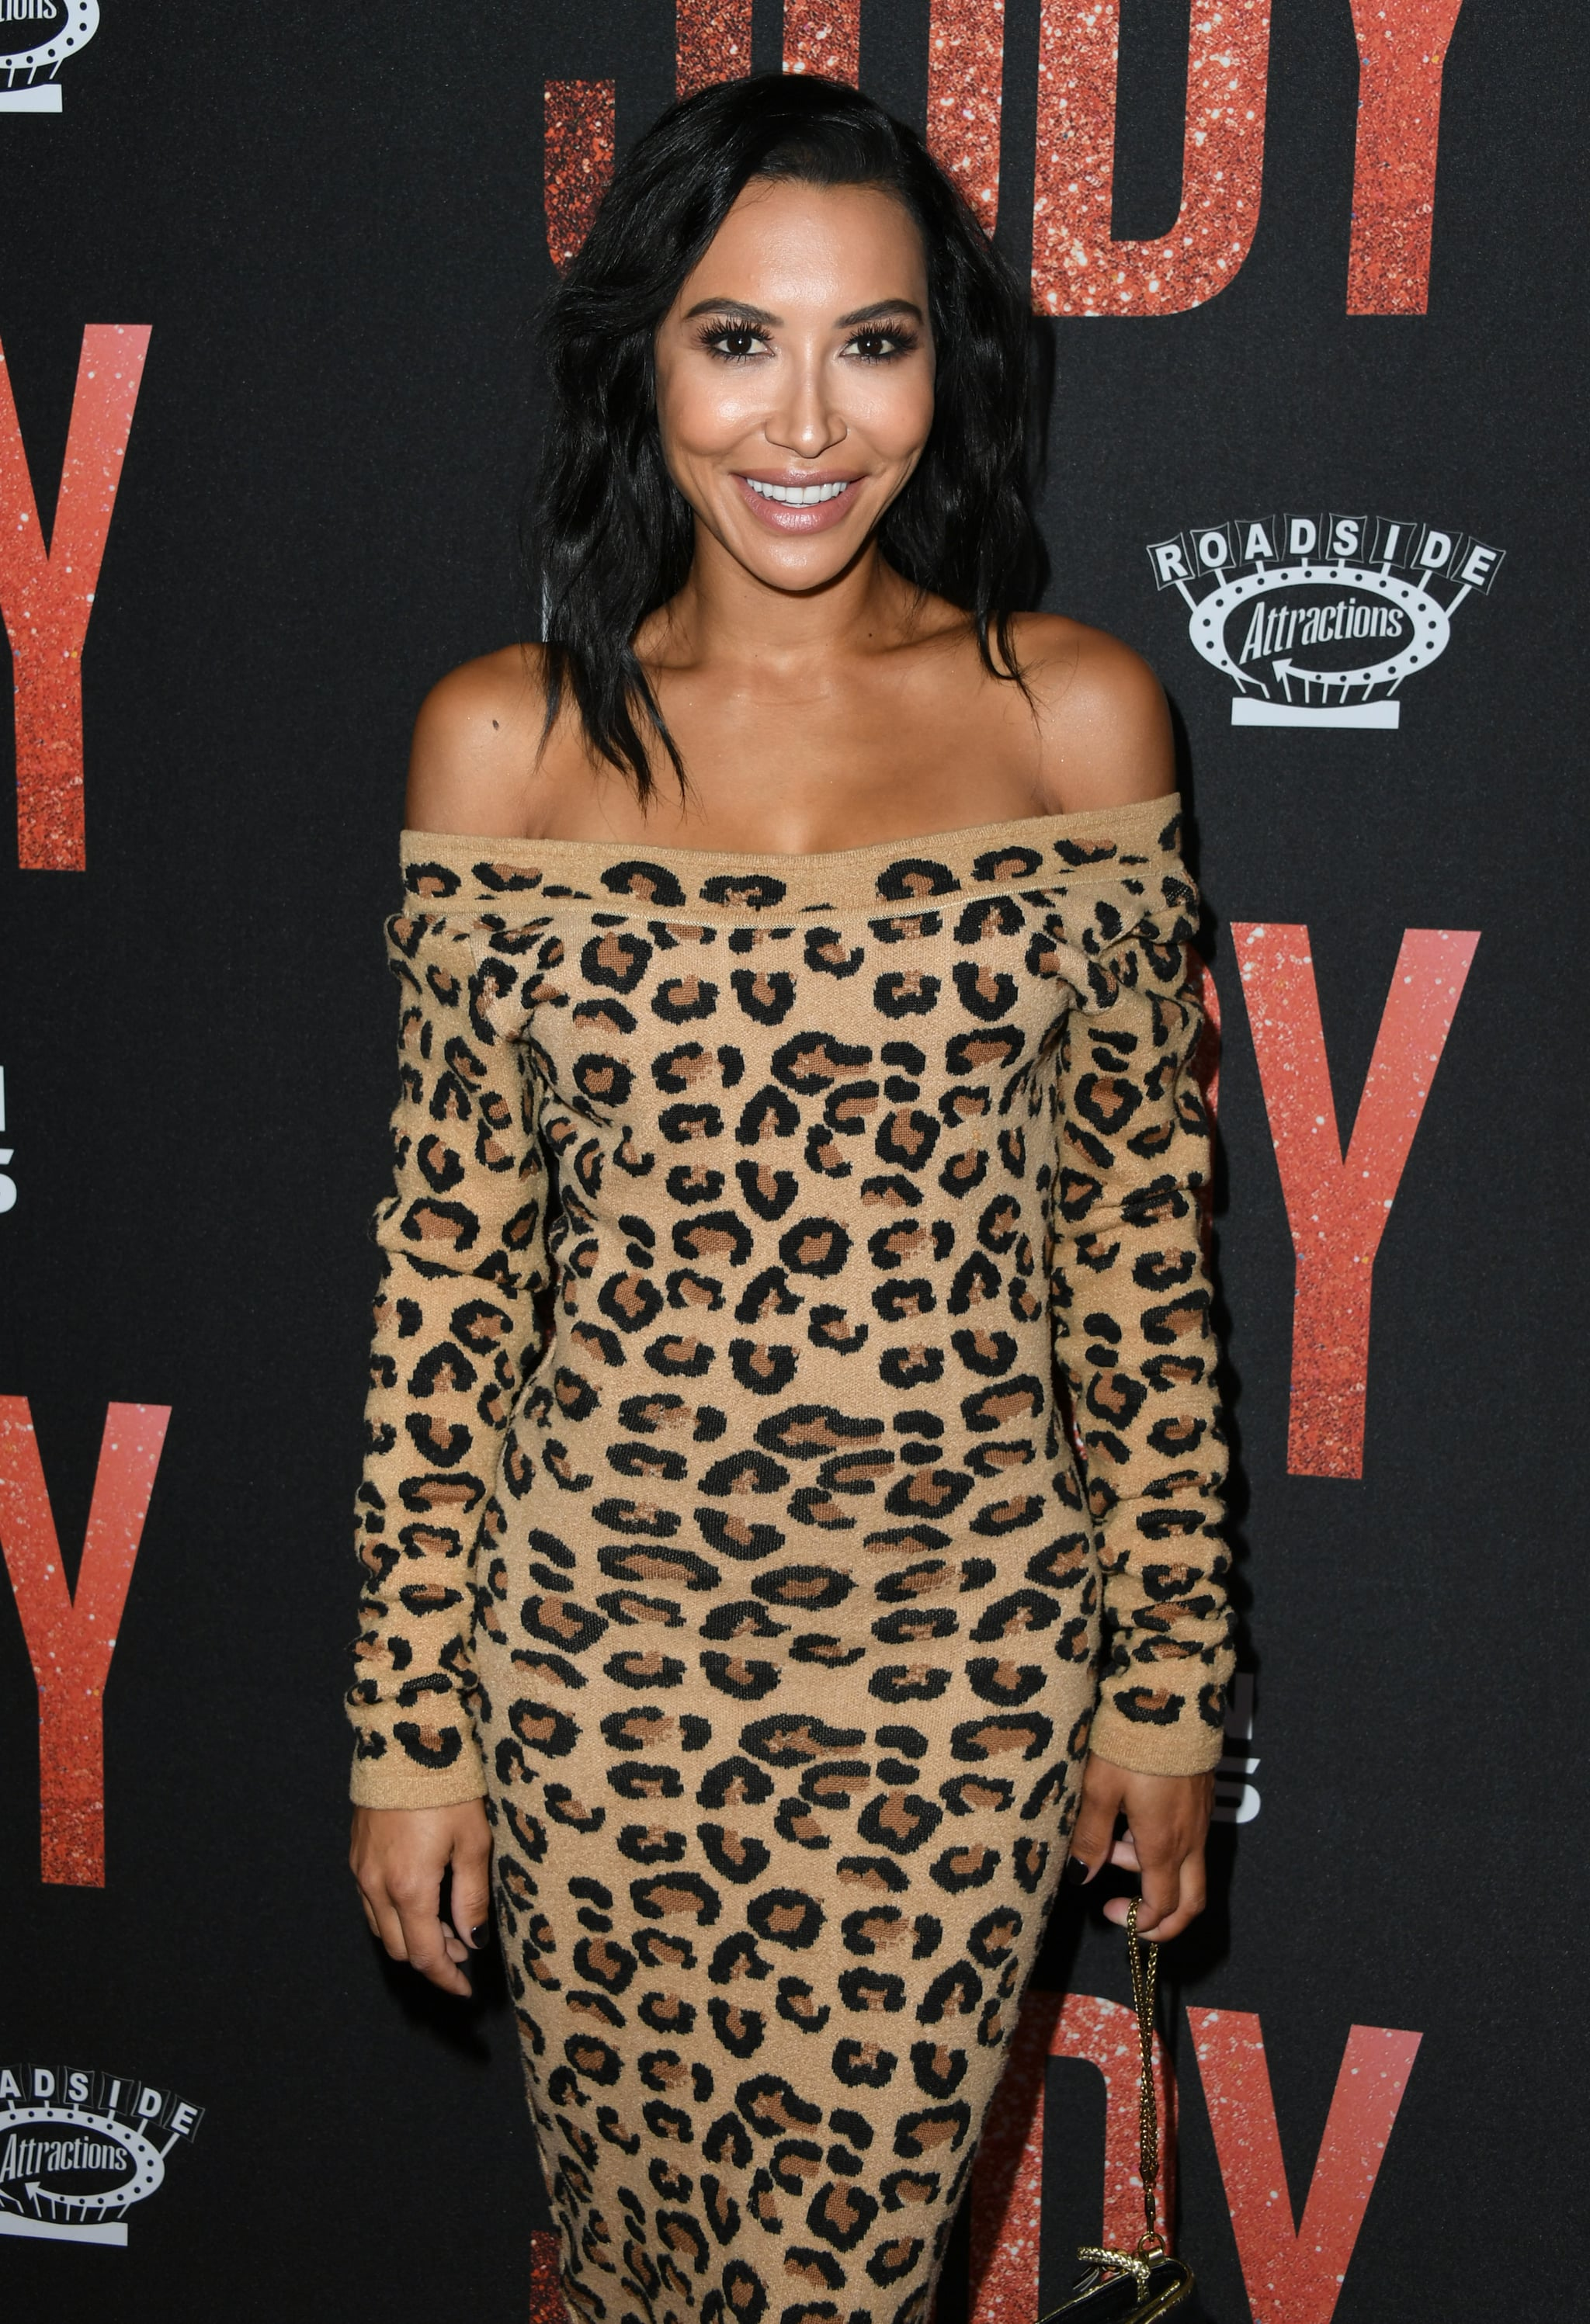 BEVERLY HILLS, CALIFORNIA - SEPTEMBER 19:  Naya Rivera attends the LA Premiere Of Roadside Attraction's